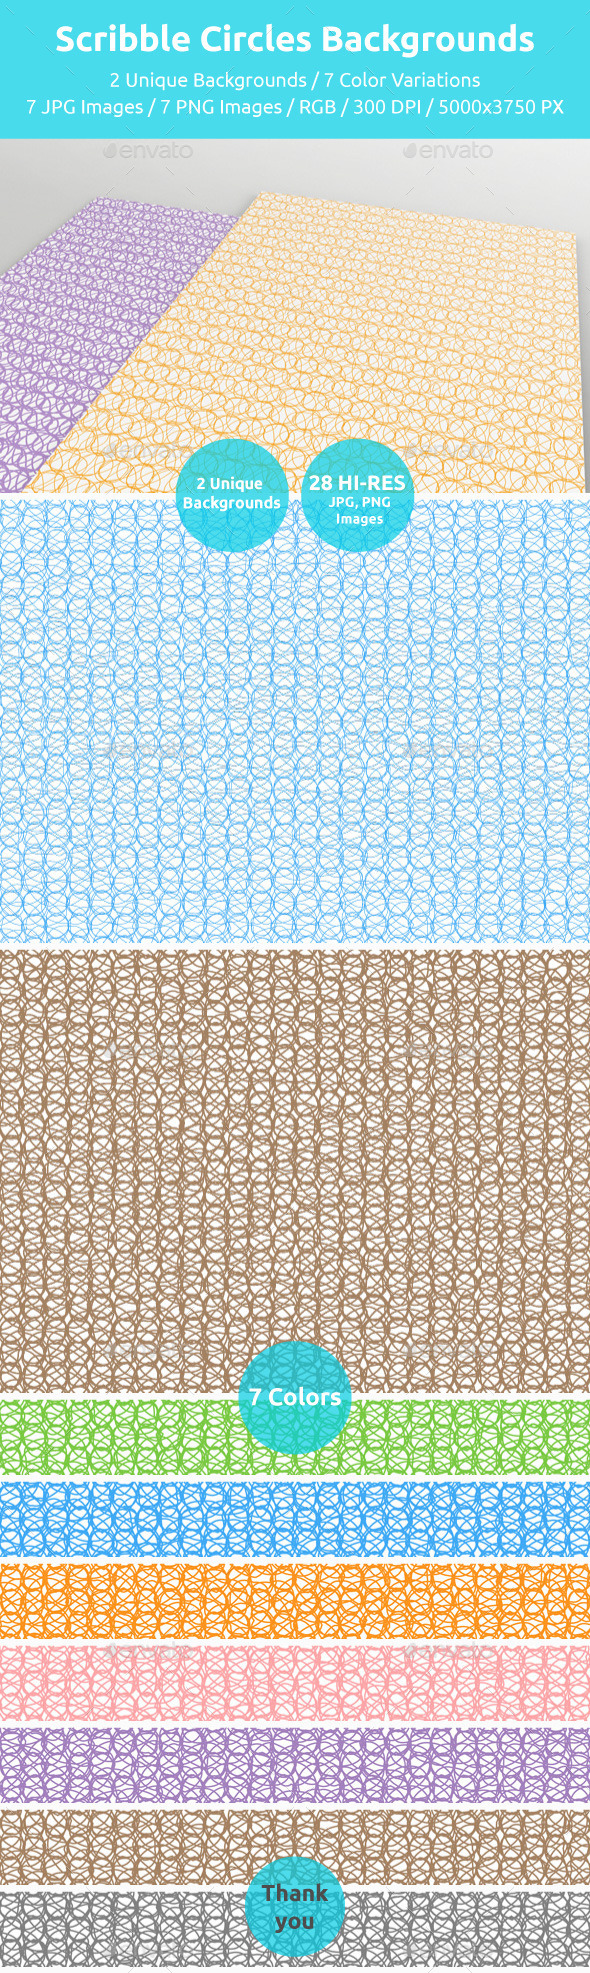 GraphicRiver Scribble Circles Backgrounds 11151197